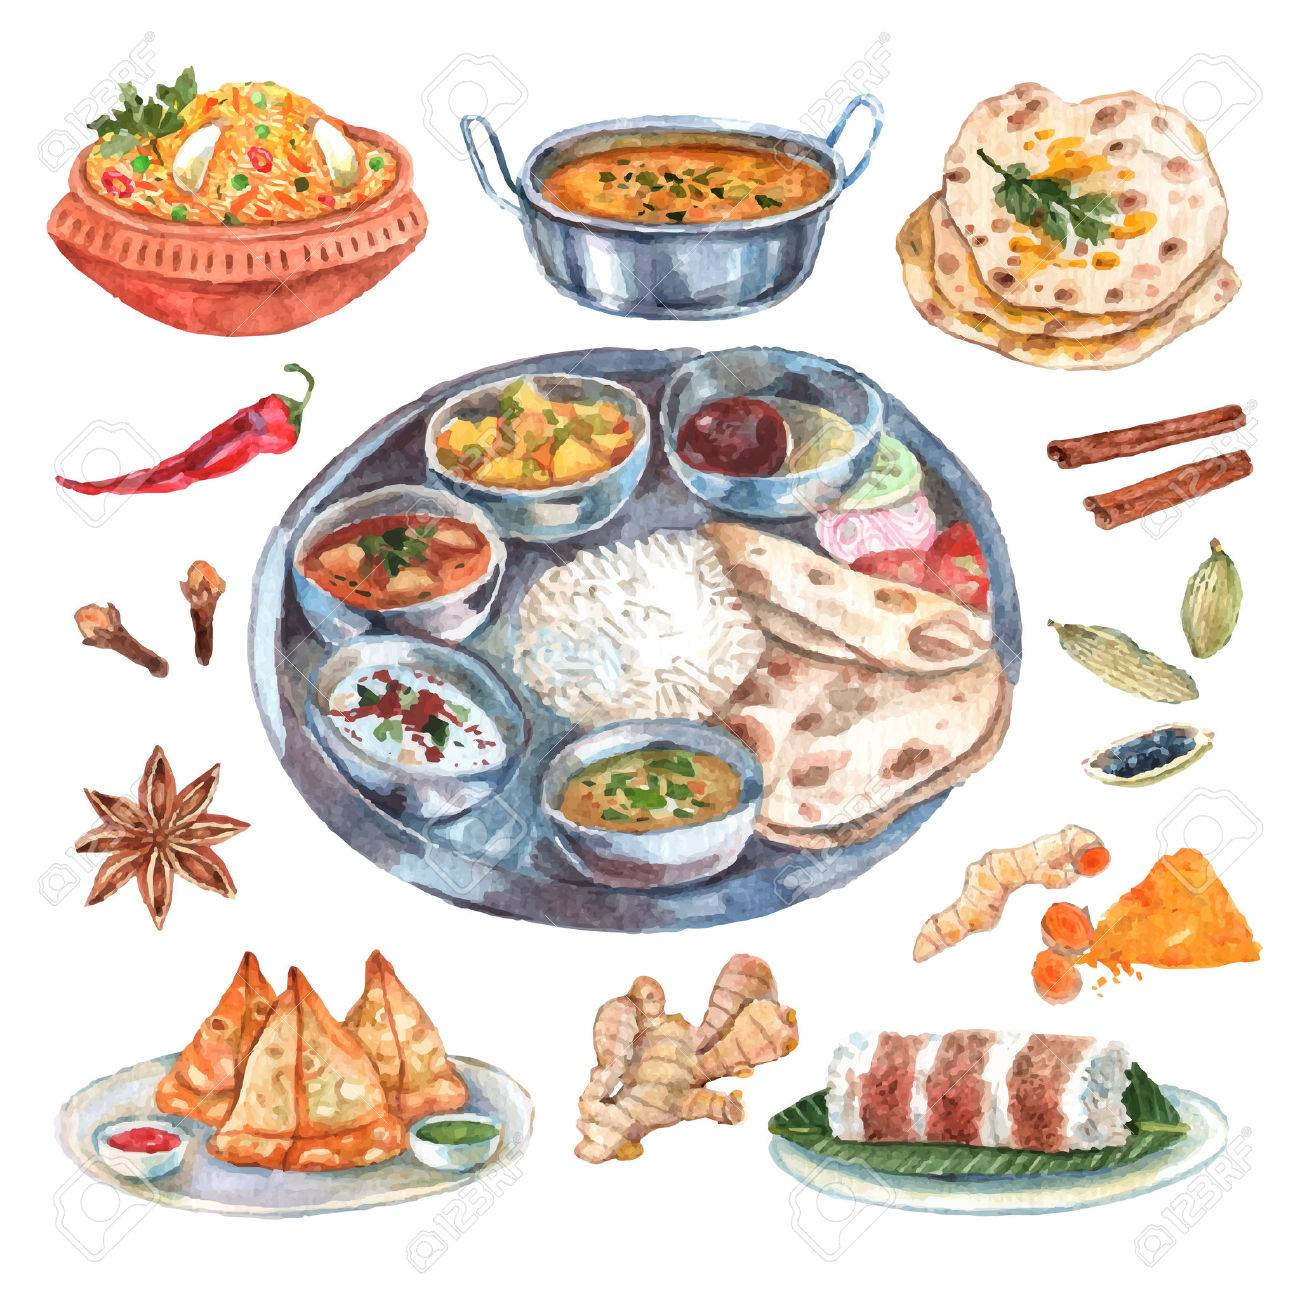 Poster Cuisine Traditional Indian Cuisine Restaurant Food Ingredients Pictograms